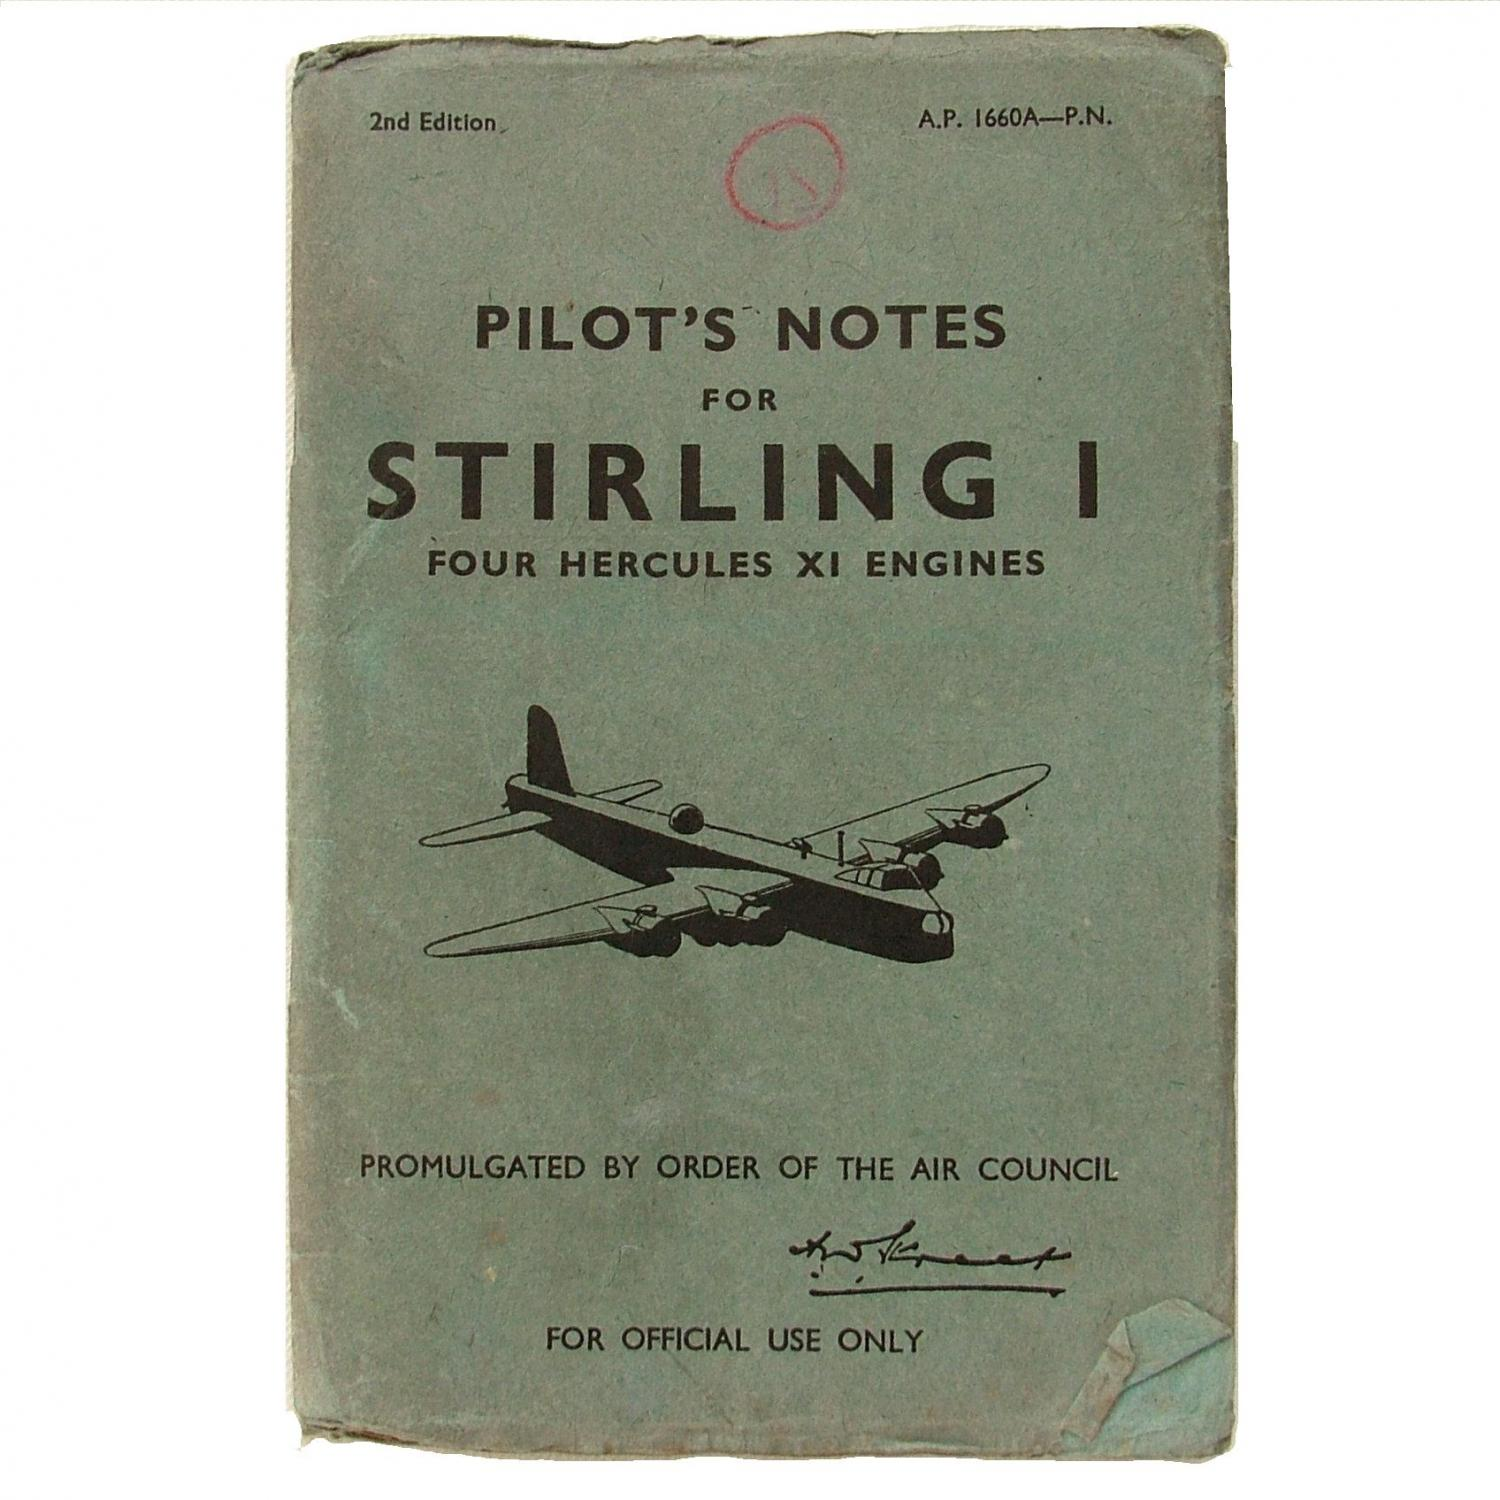 R.A.F. Pilot's Notes : Stirling I